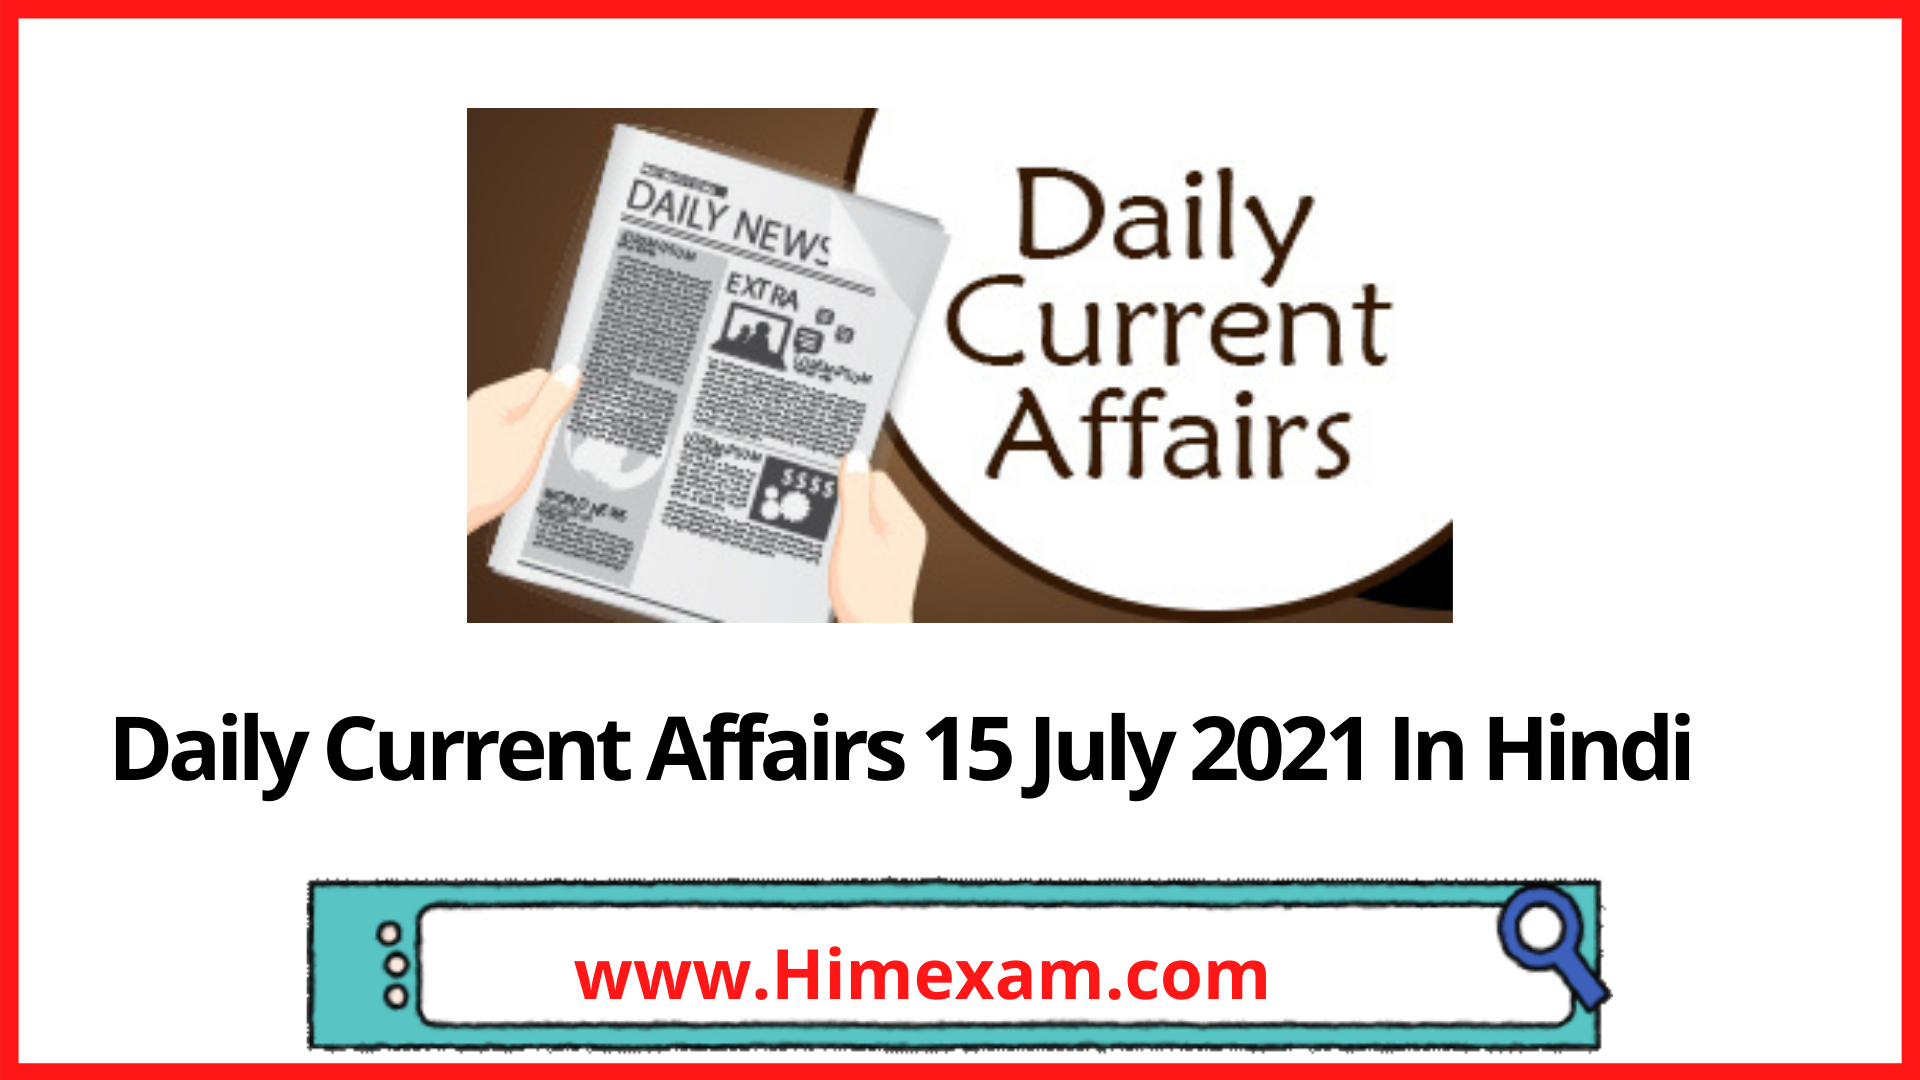 Daily Current Affairs 15 July 2021 In Hindi